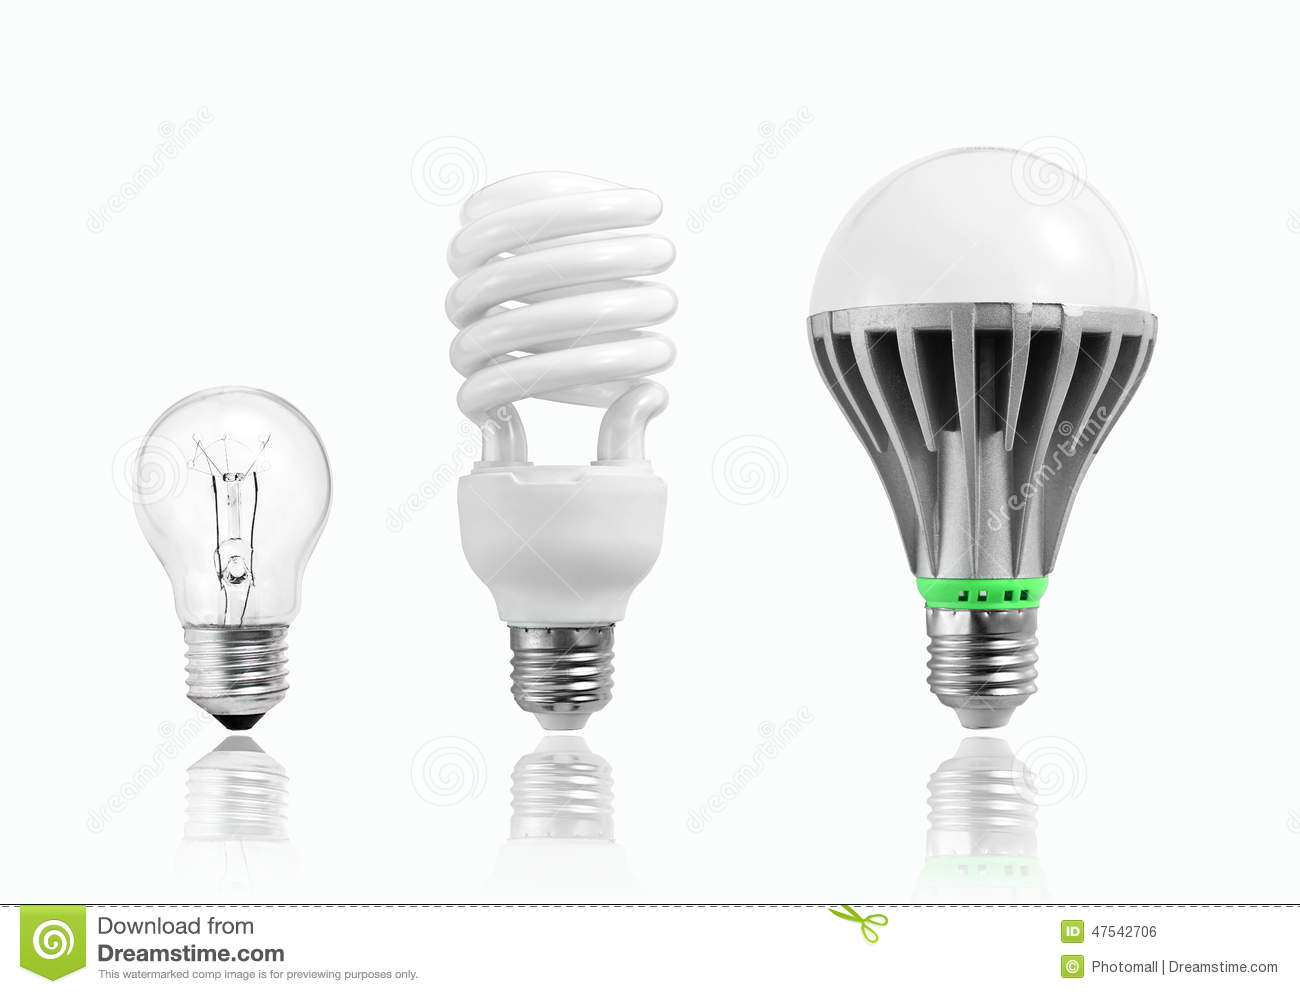 Led Lamp Led Light Energy Saving Lighting Lamp Bulb Led